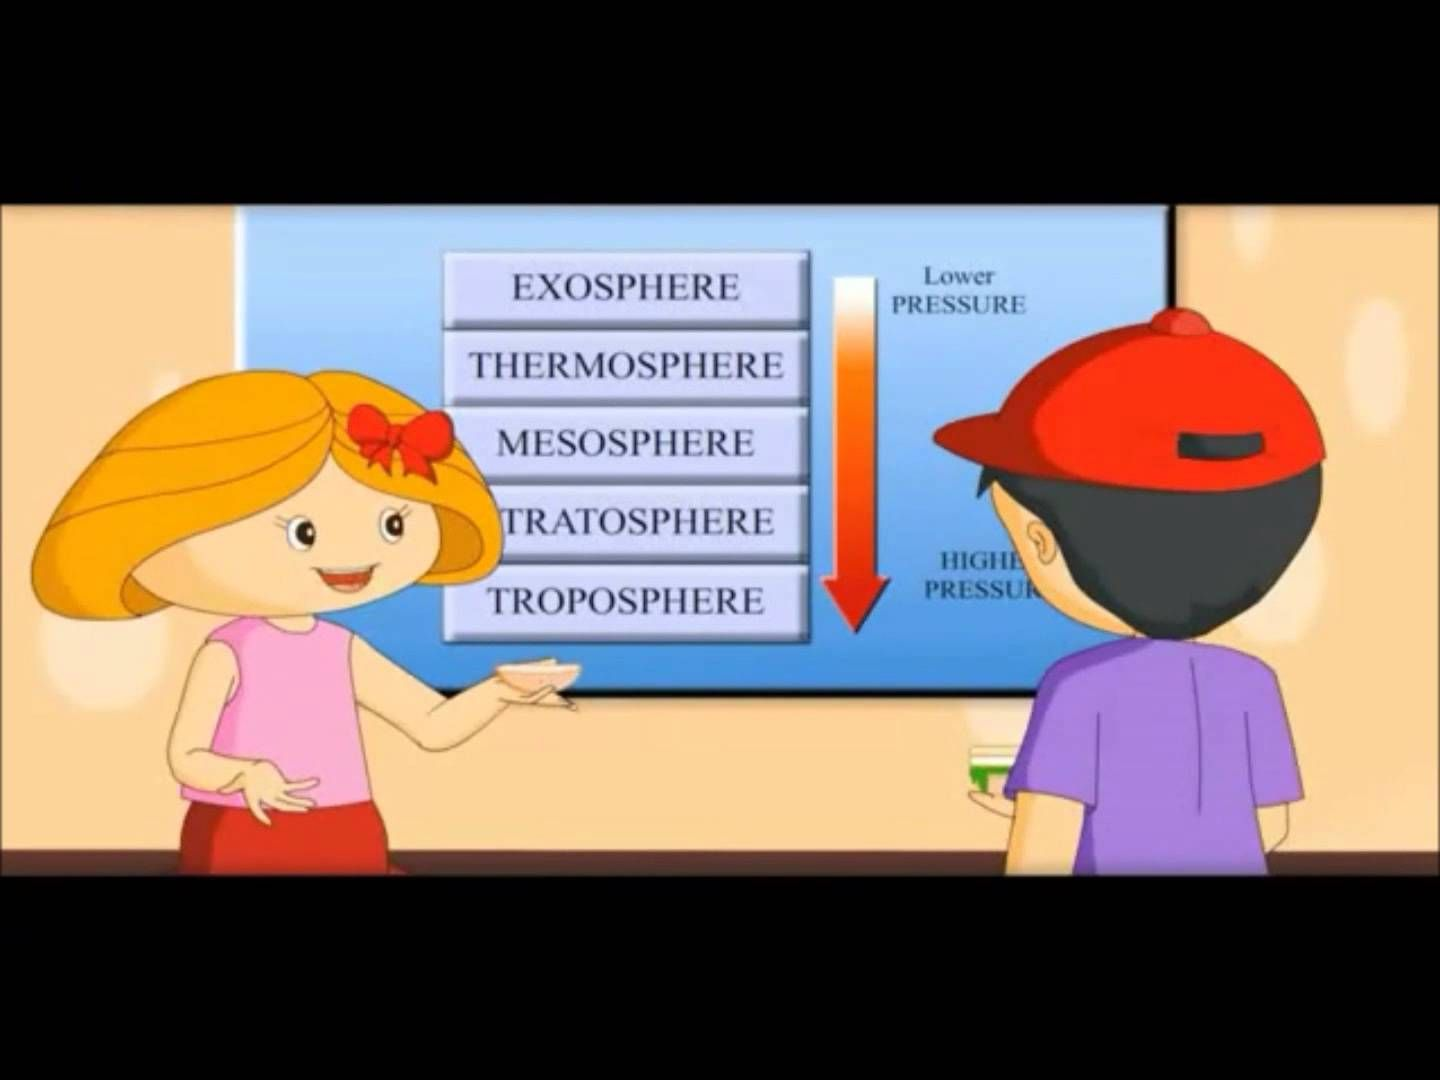 Earth Atmosphere Air Amp Layers Video For Kids Via Youtube